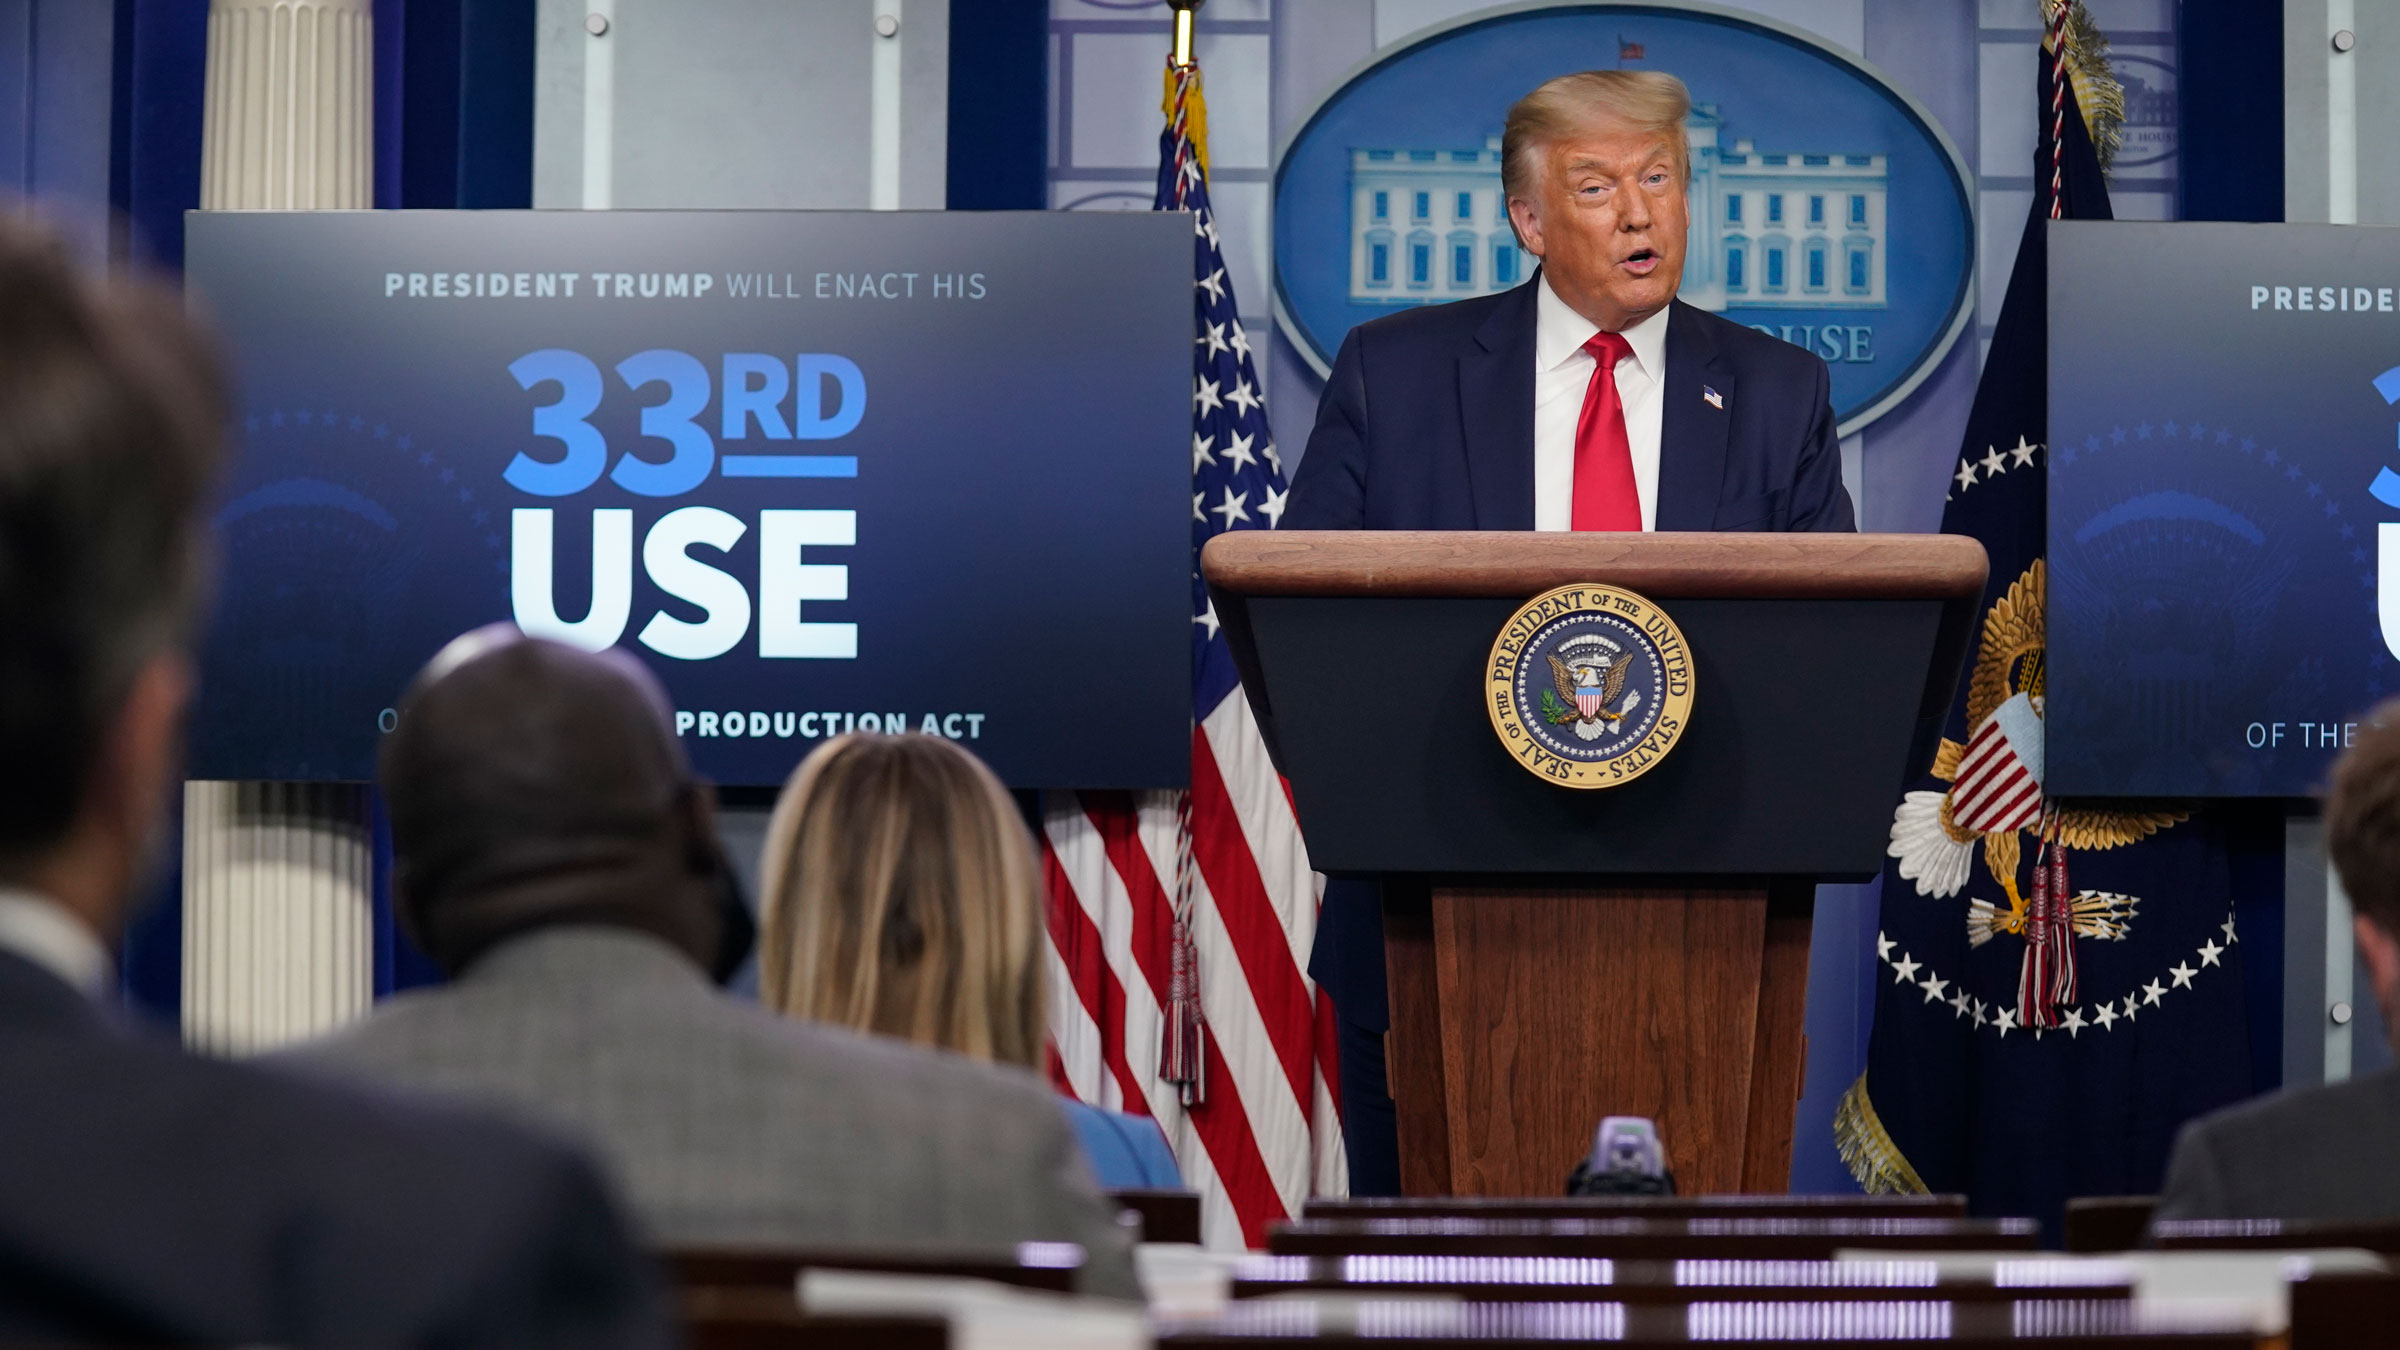 President Donald Trump speaks during his White House news conference on Tuesday.